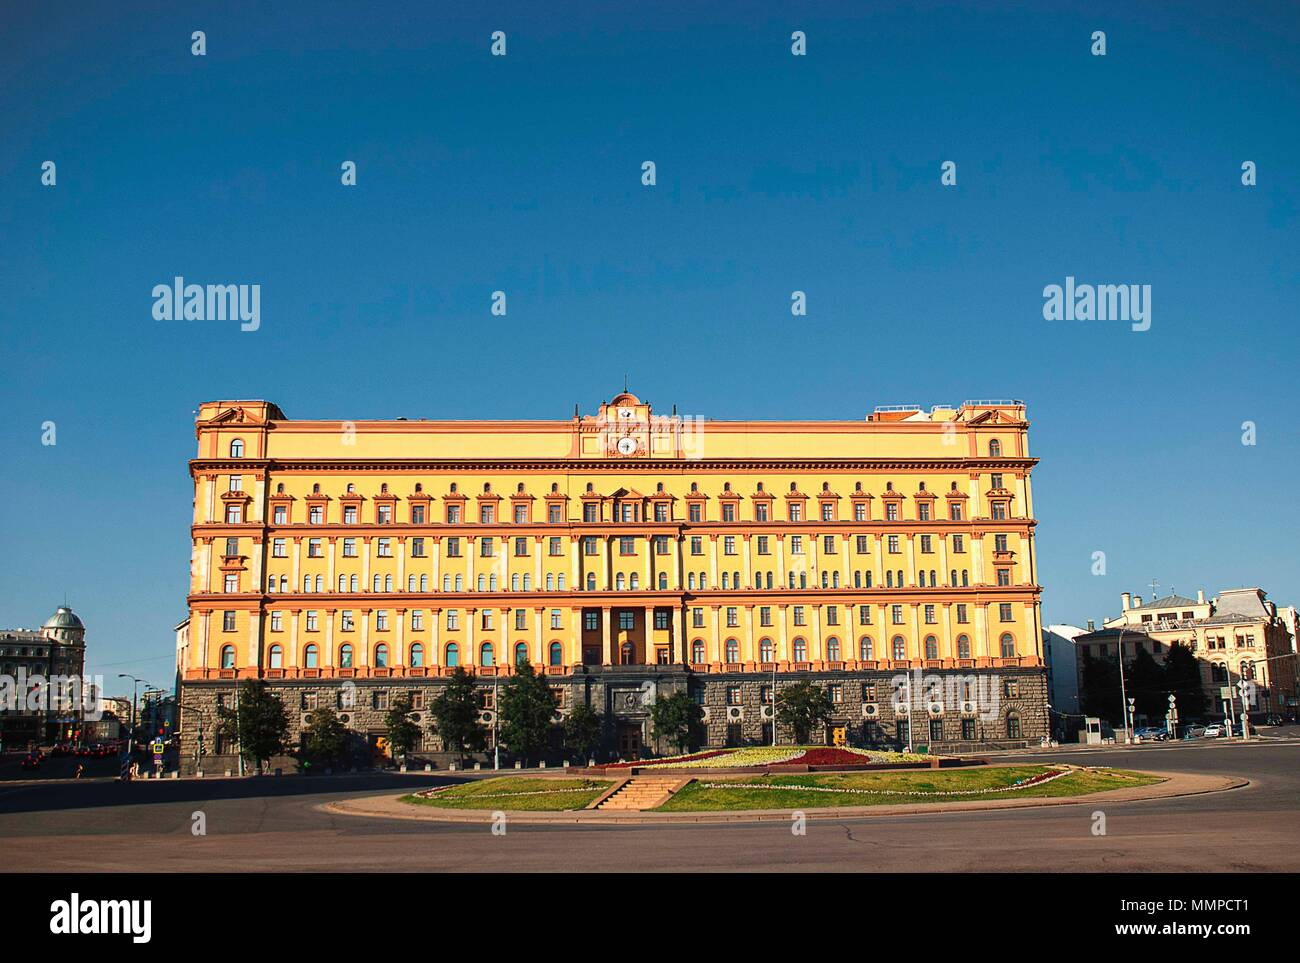 The Lubyanka building in central Moscow - Stock Image